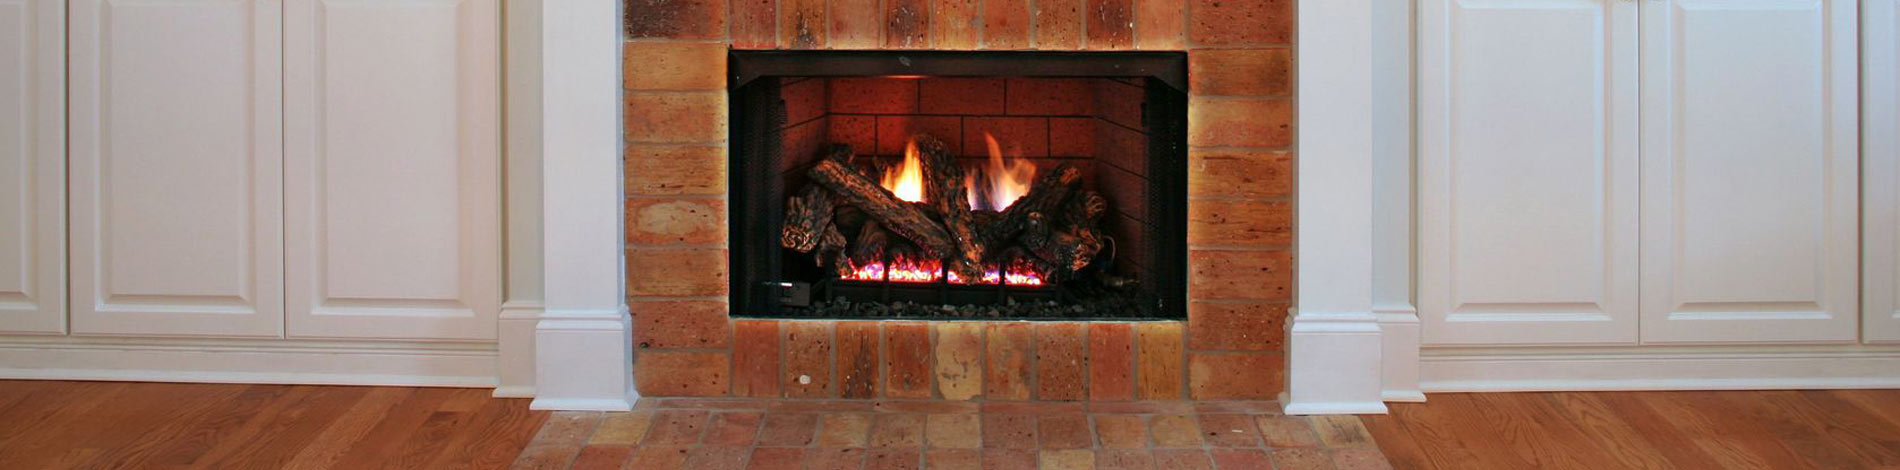 Running Gas Line To Fireplace Heating Services Products Kitchen Bathroom Remodeling